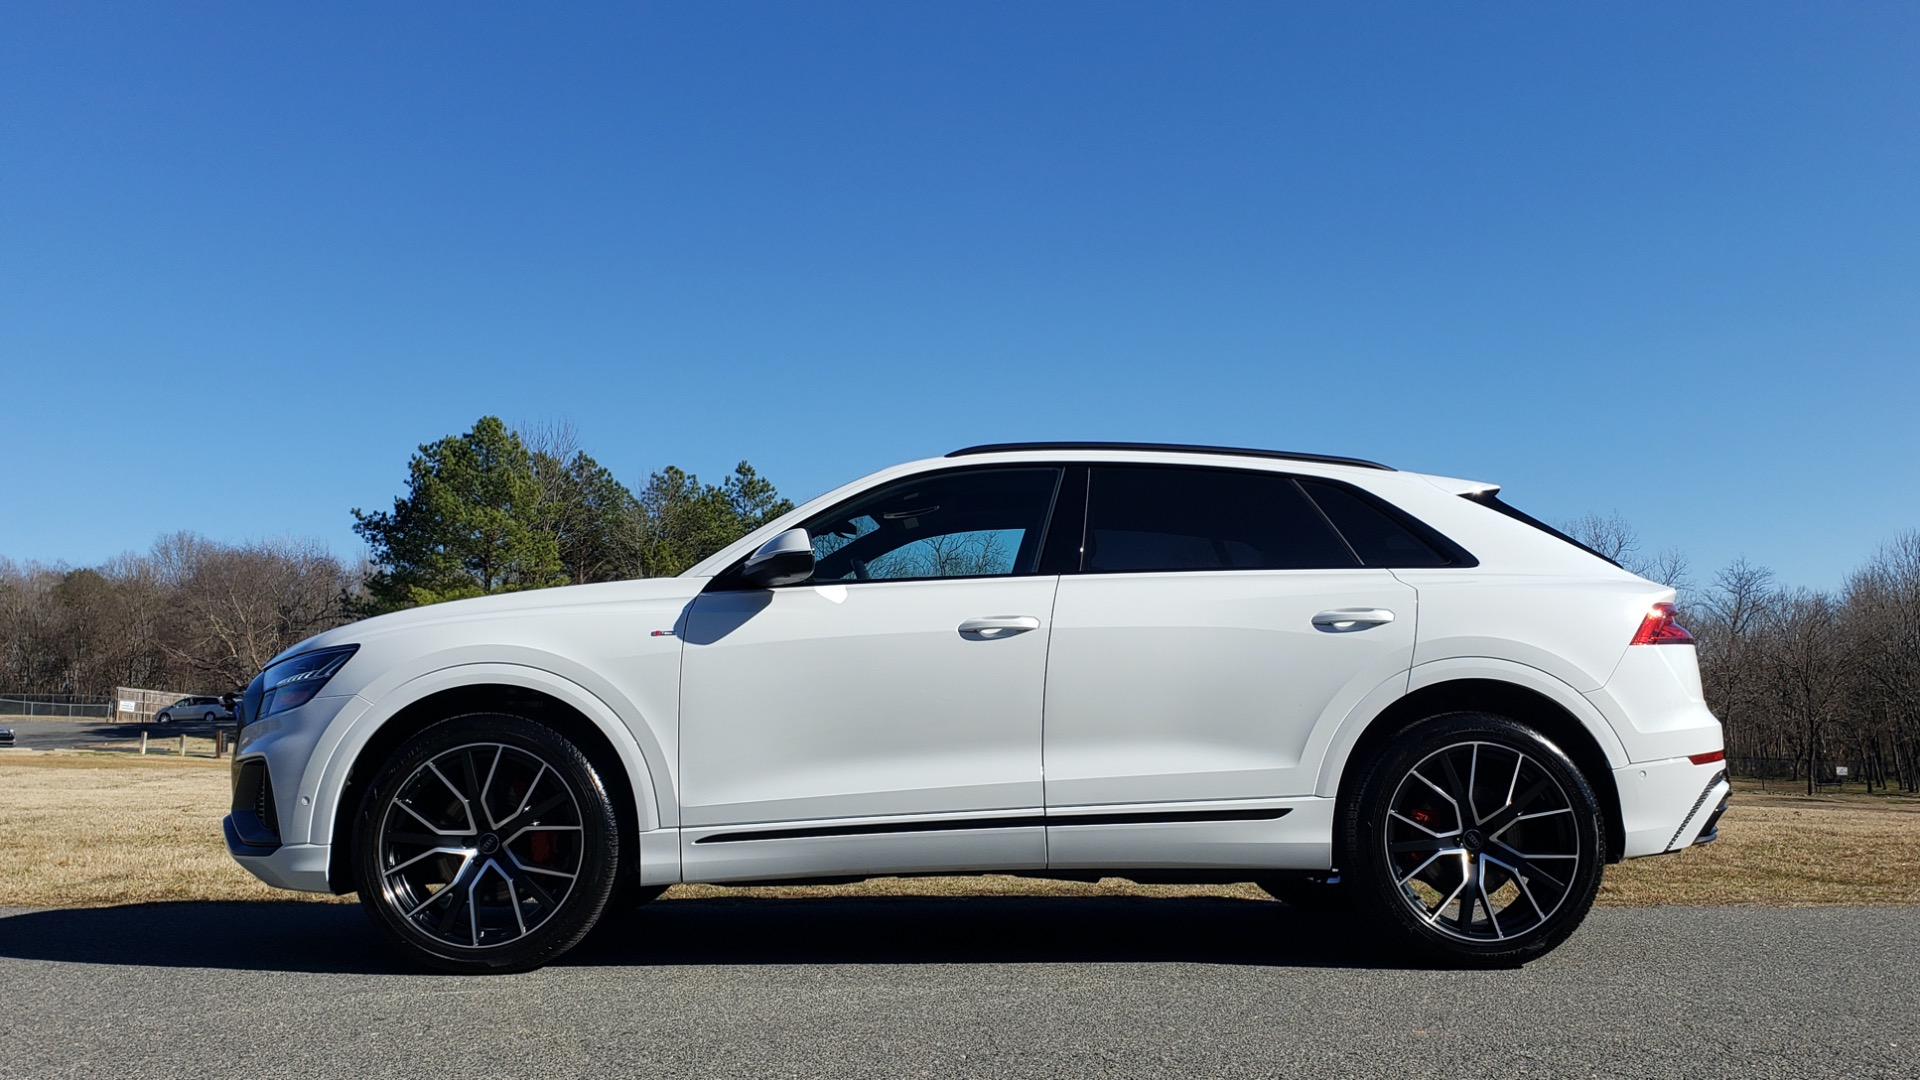 Used 2019 Audi Q8 PRESTIGE S-LINE / LUX PKG / ADAPT CHASSIS / YEAR ONE / CLD WTHR for sale Sold at Formula Imports in Charlotte NC 28227 4